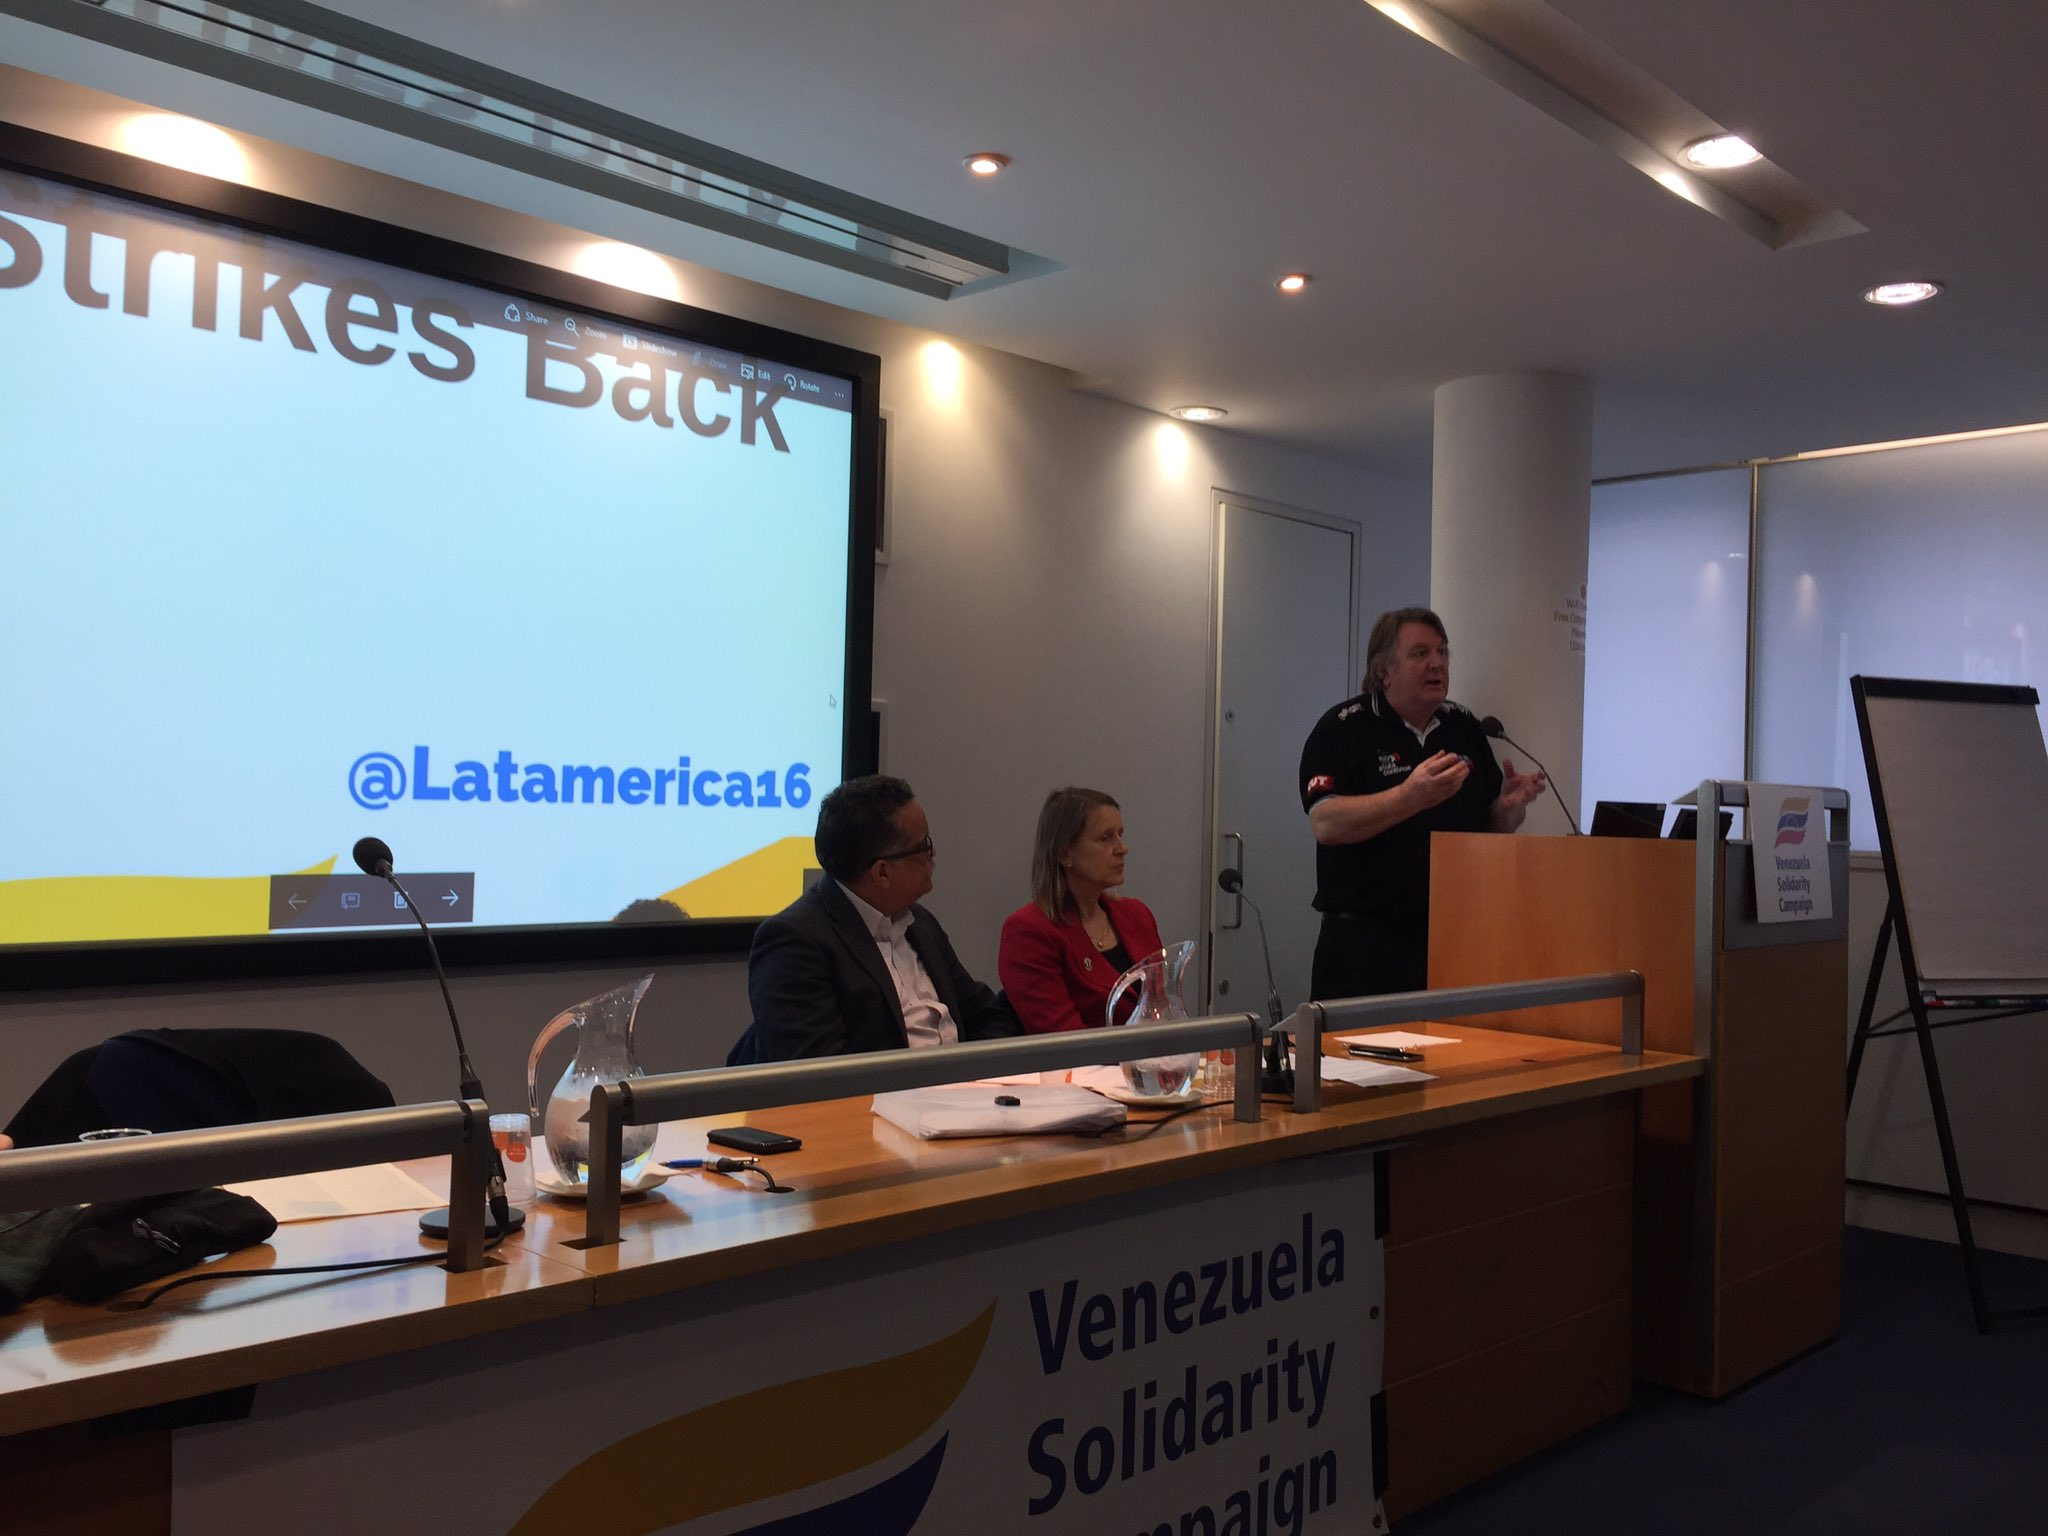 Tony Burke, Unite AGS. Solidarity with our Sisters & Brothers in Venezuela @LatAmerica16 @TonyBurke2010 https://t.co/BfvB8ii6Oi